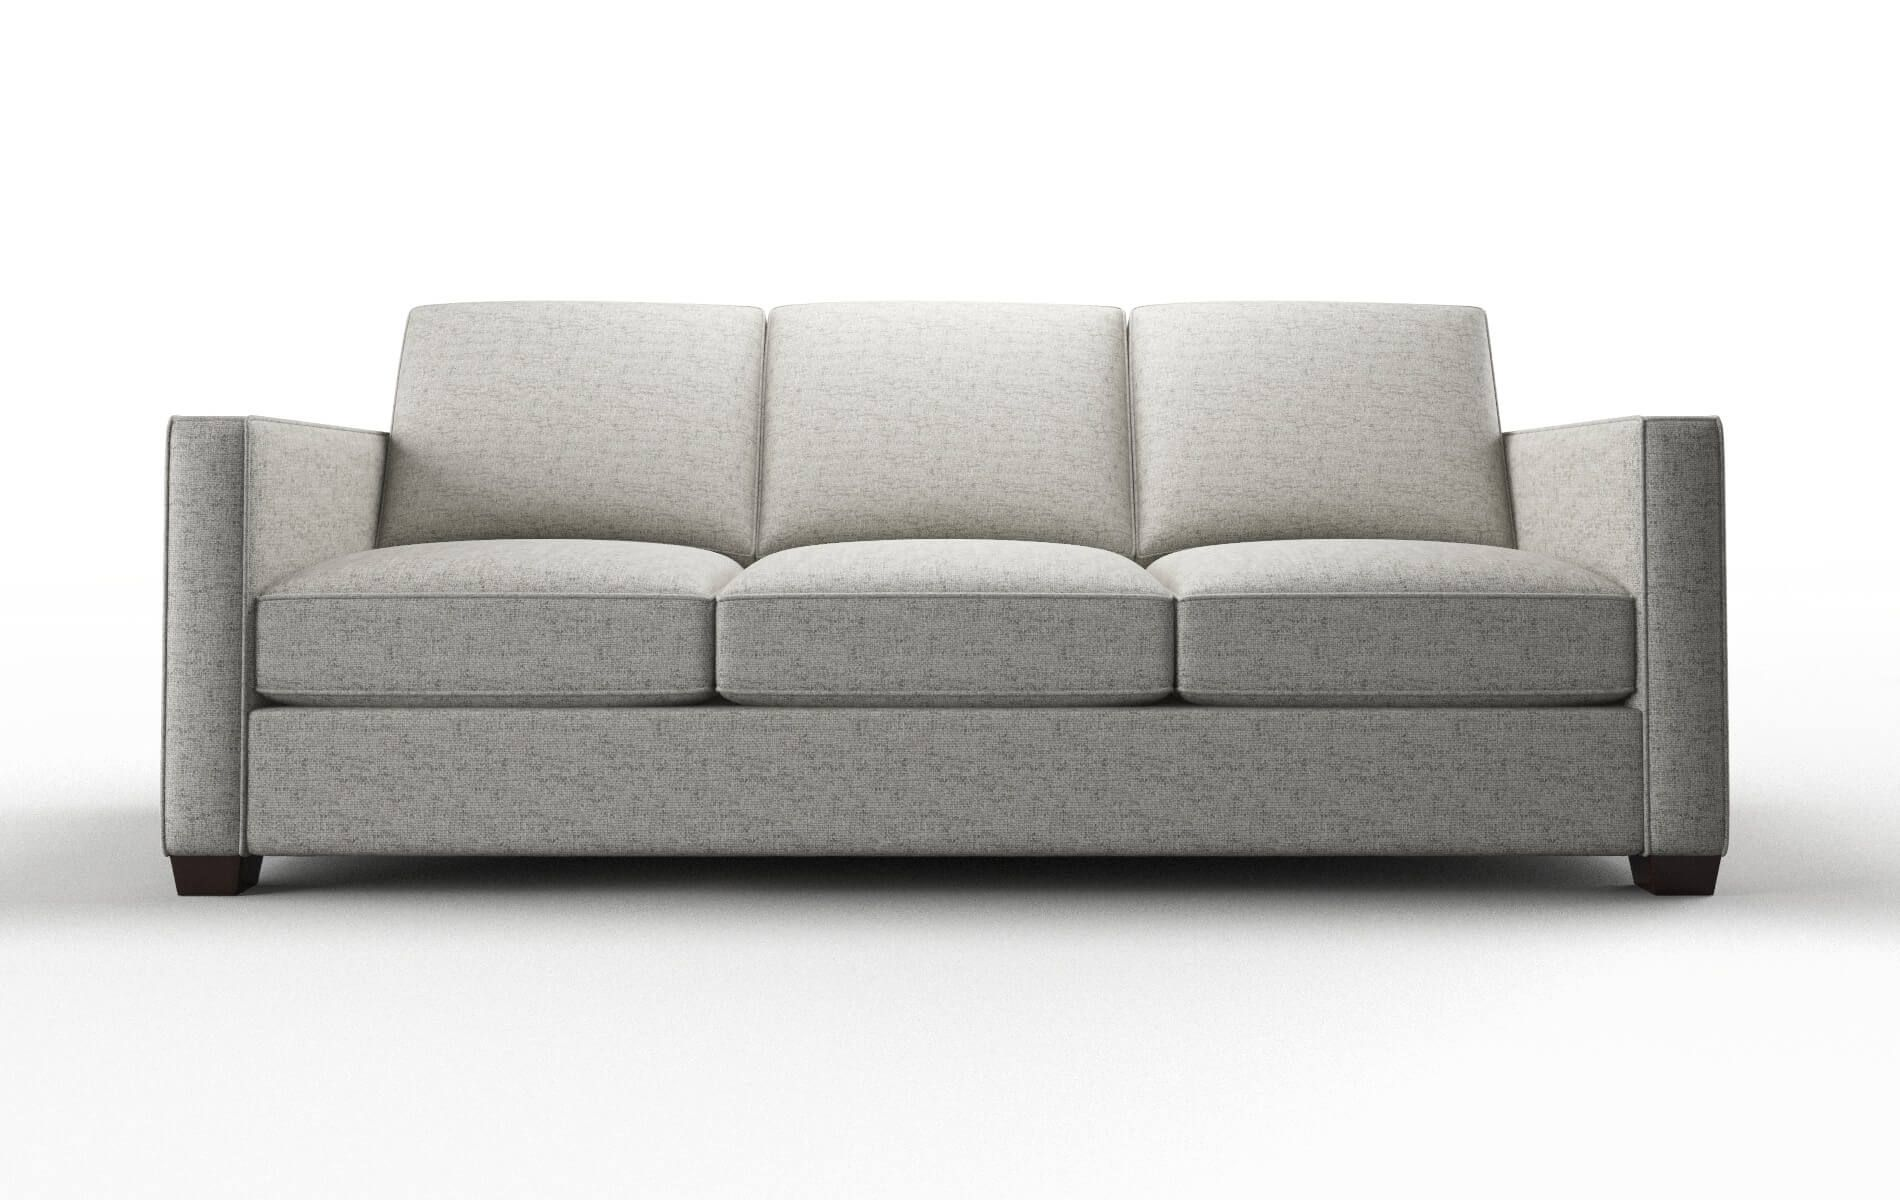 Alexandria Oceanside Natural Sofa With Images Natural Sofas Turquoise Sofa